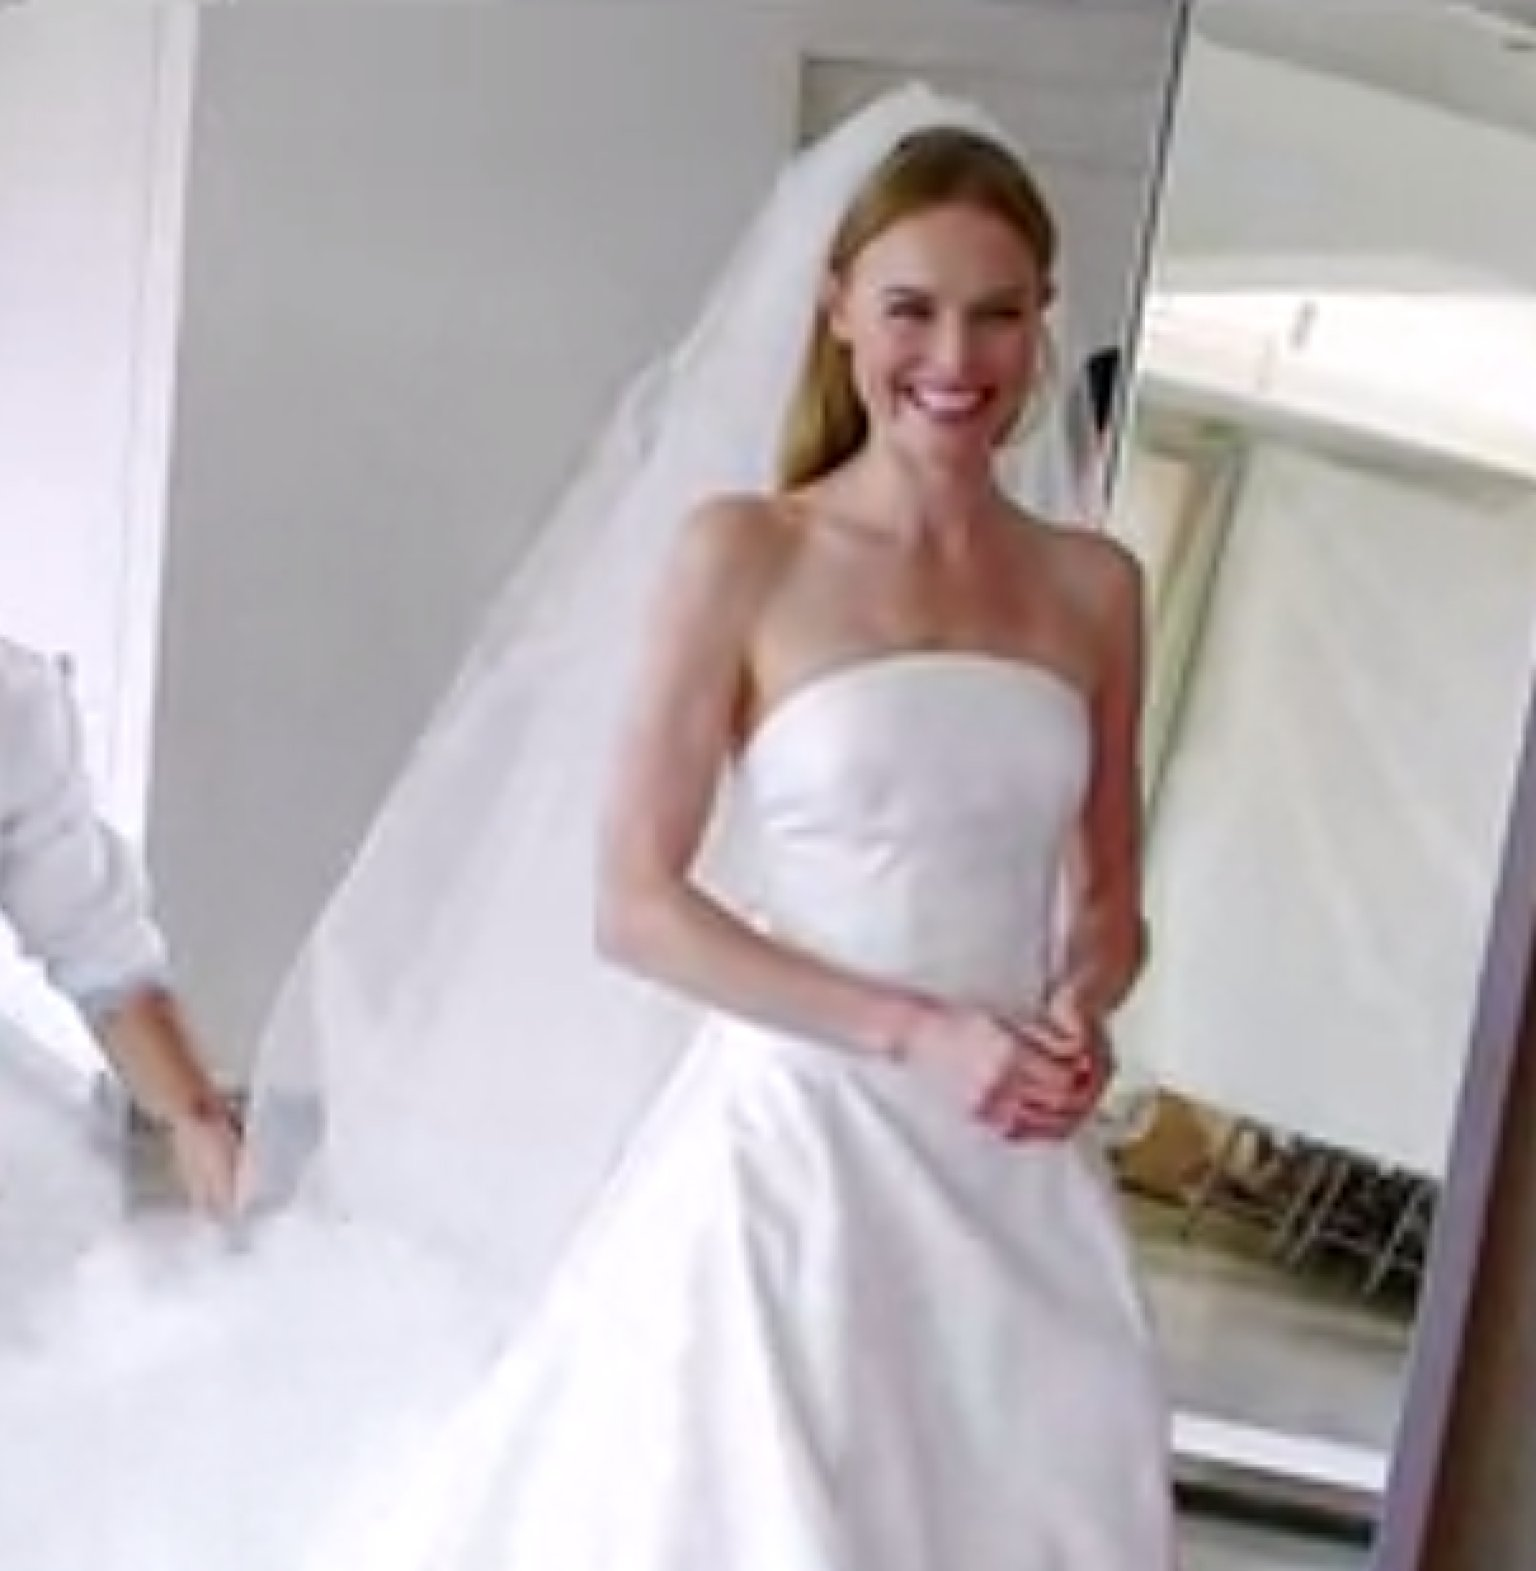 Kate Bosworth Wedding Dress: Watch Her Try On The Gown For ...